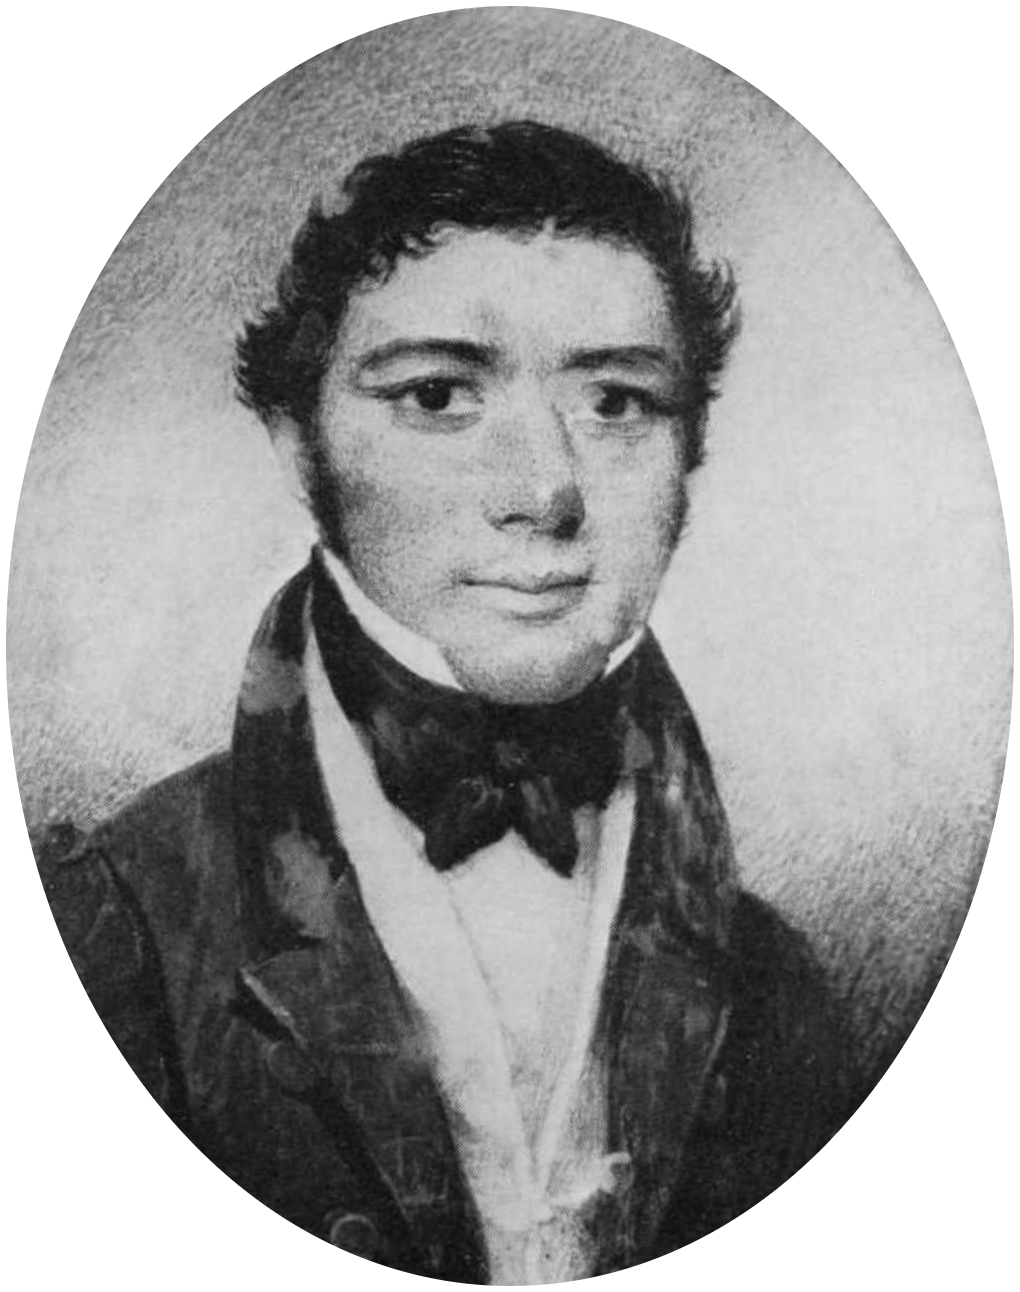 Captain John Dominis (1796–1846), the wealthy American merchant who built the house now known as Washington Place.